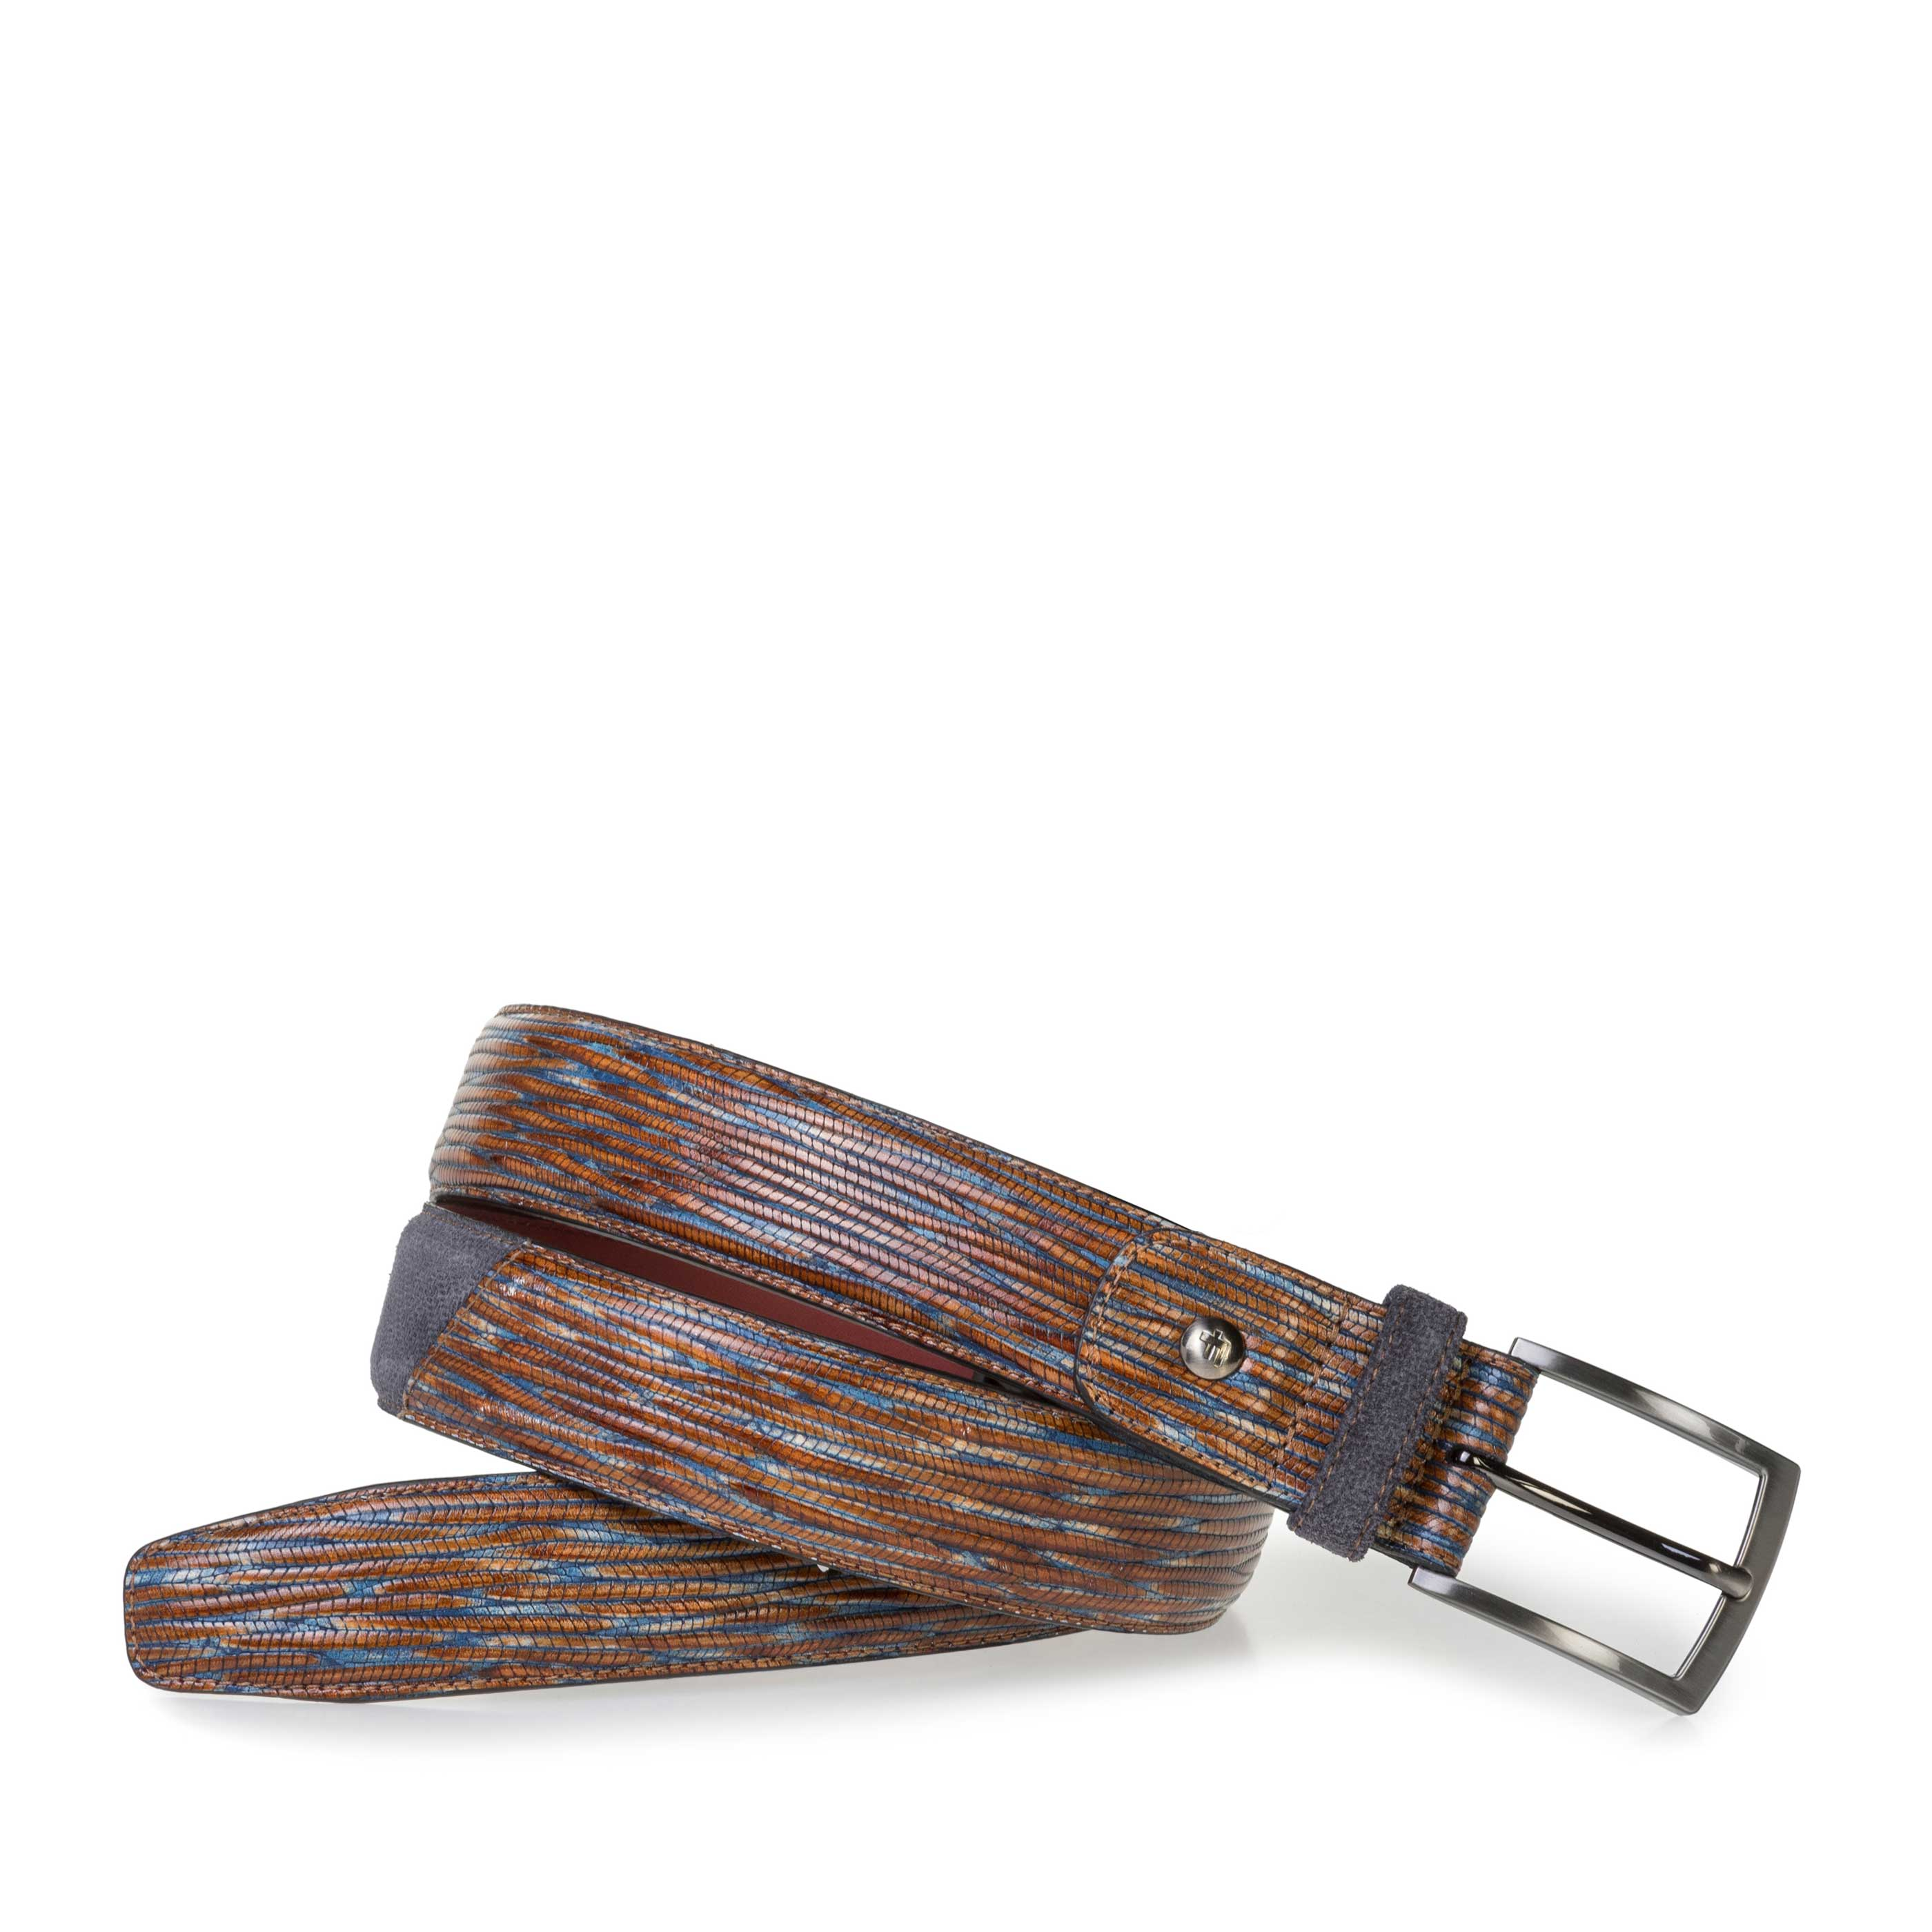 75188/60 - Blue and red leather belt with print